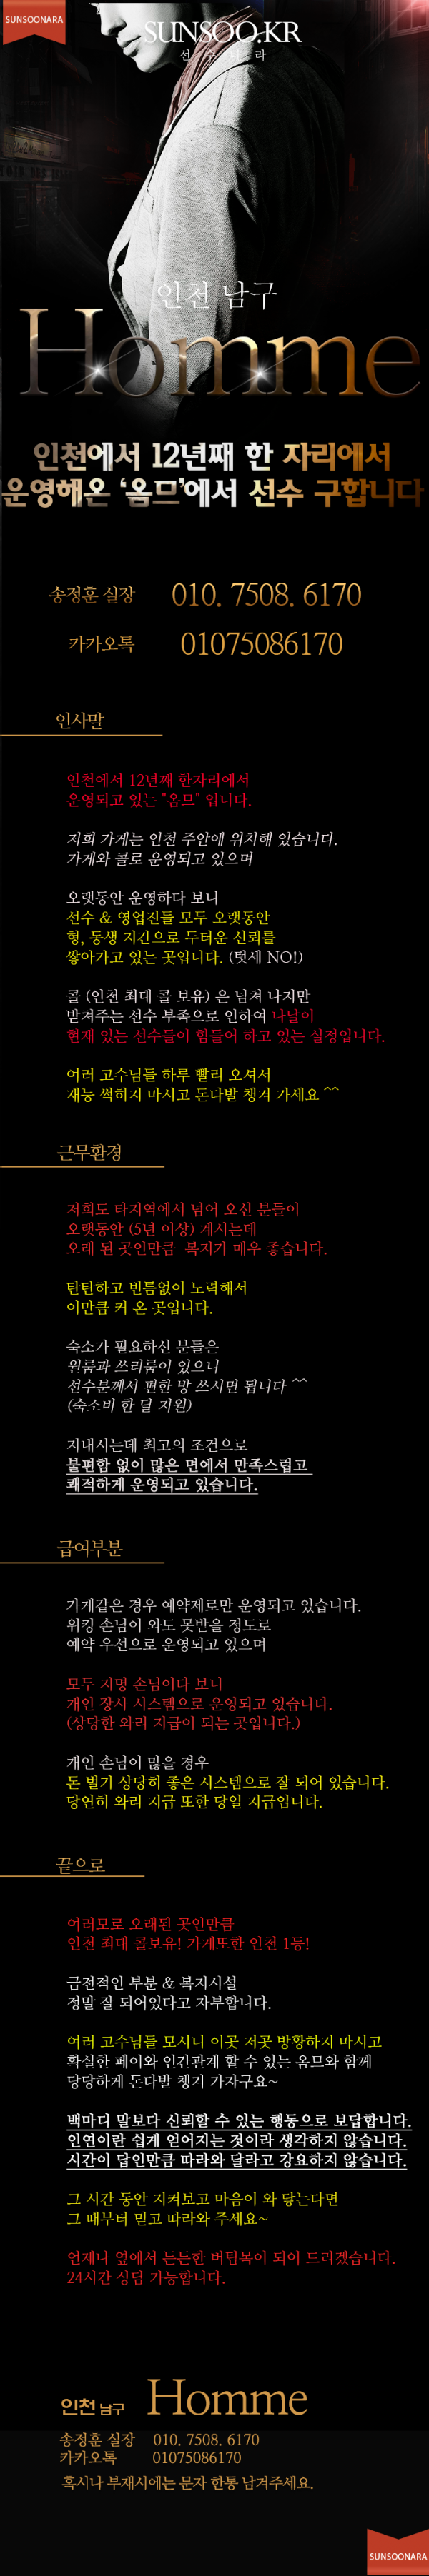 homme(옴므).png